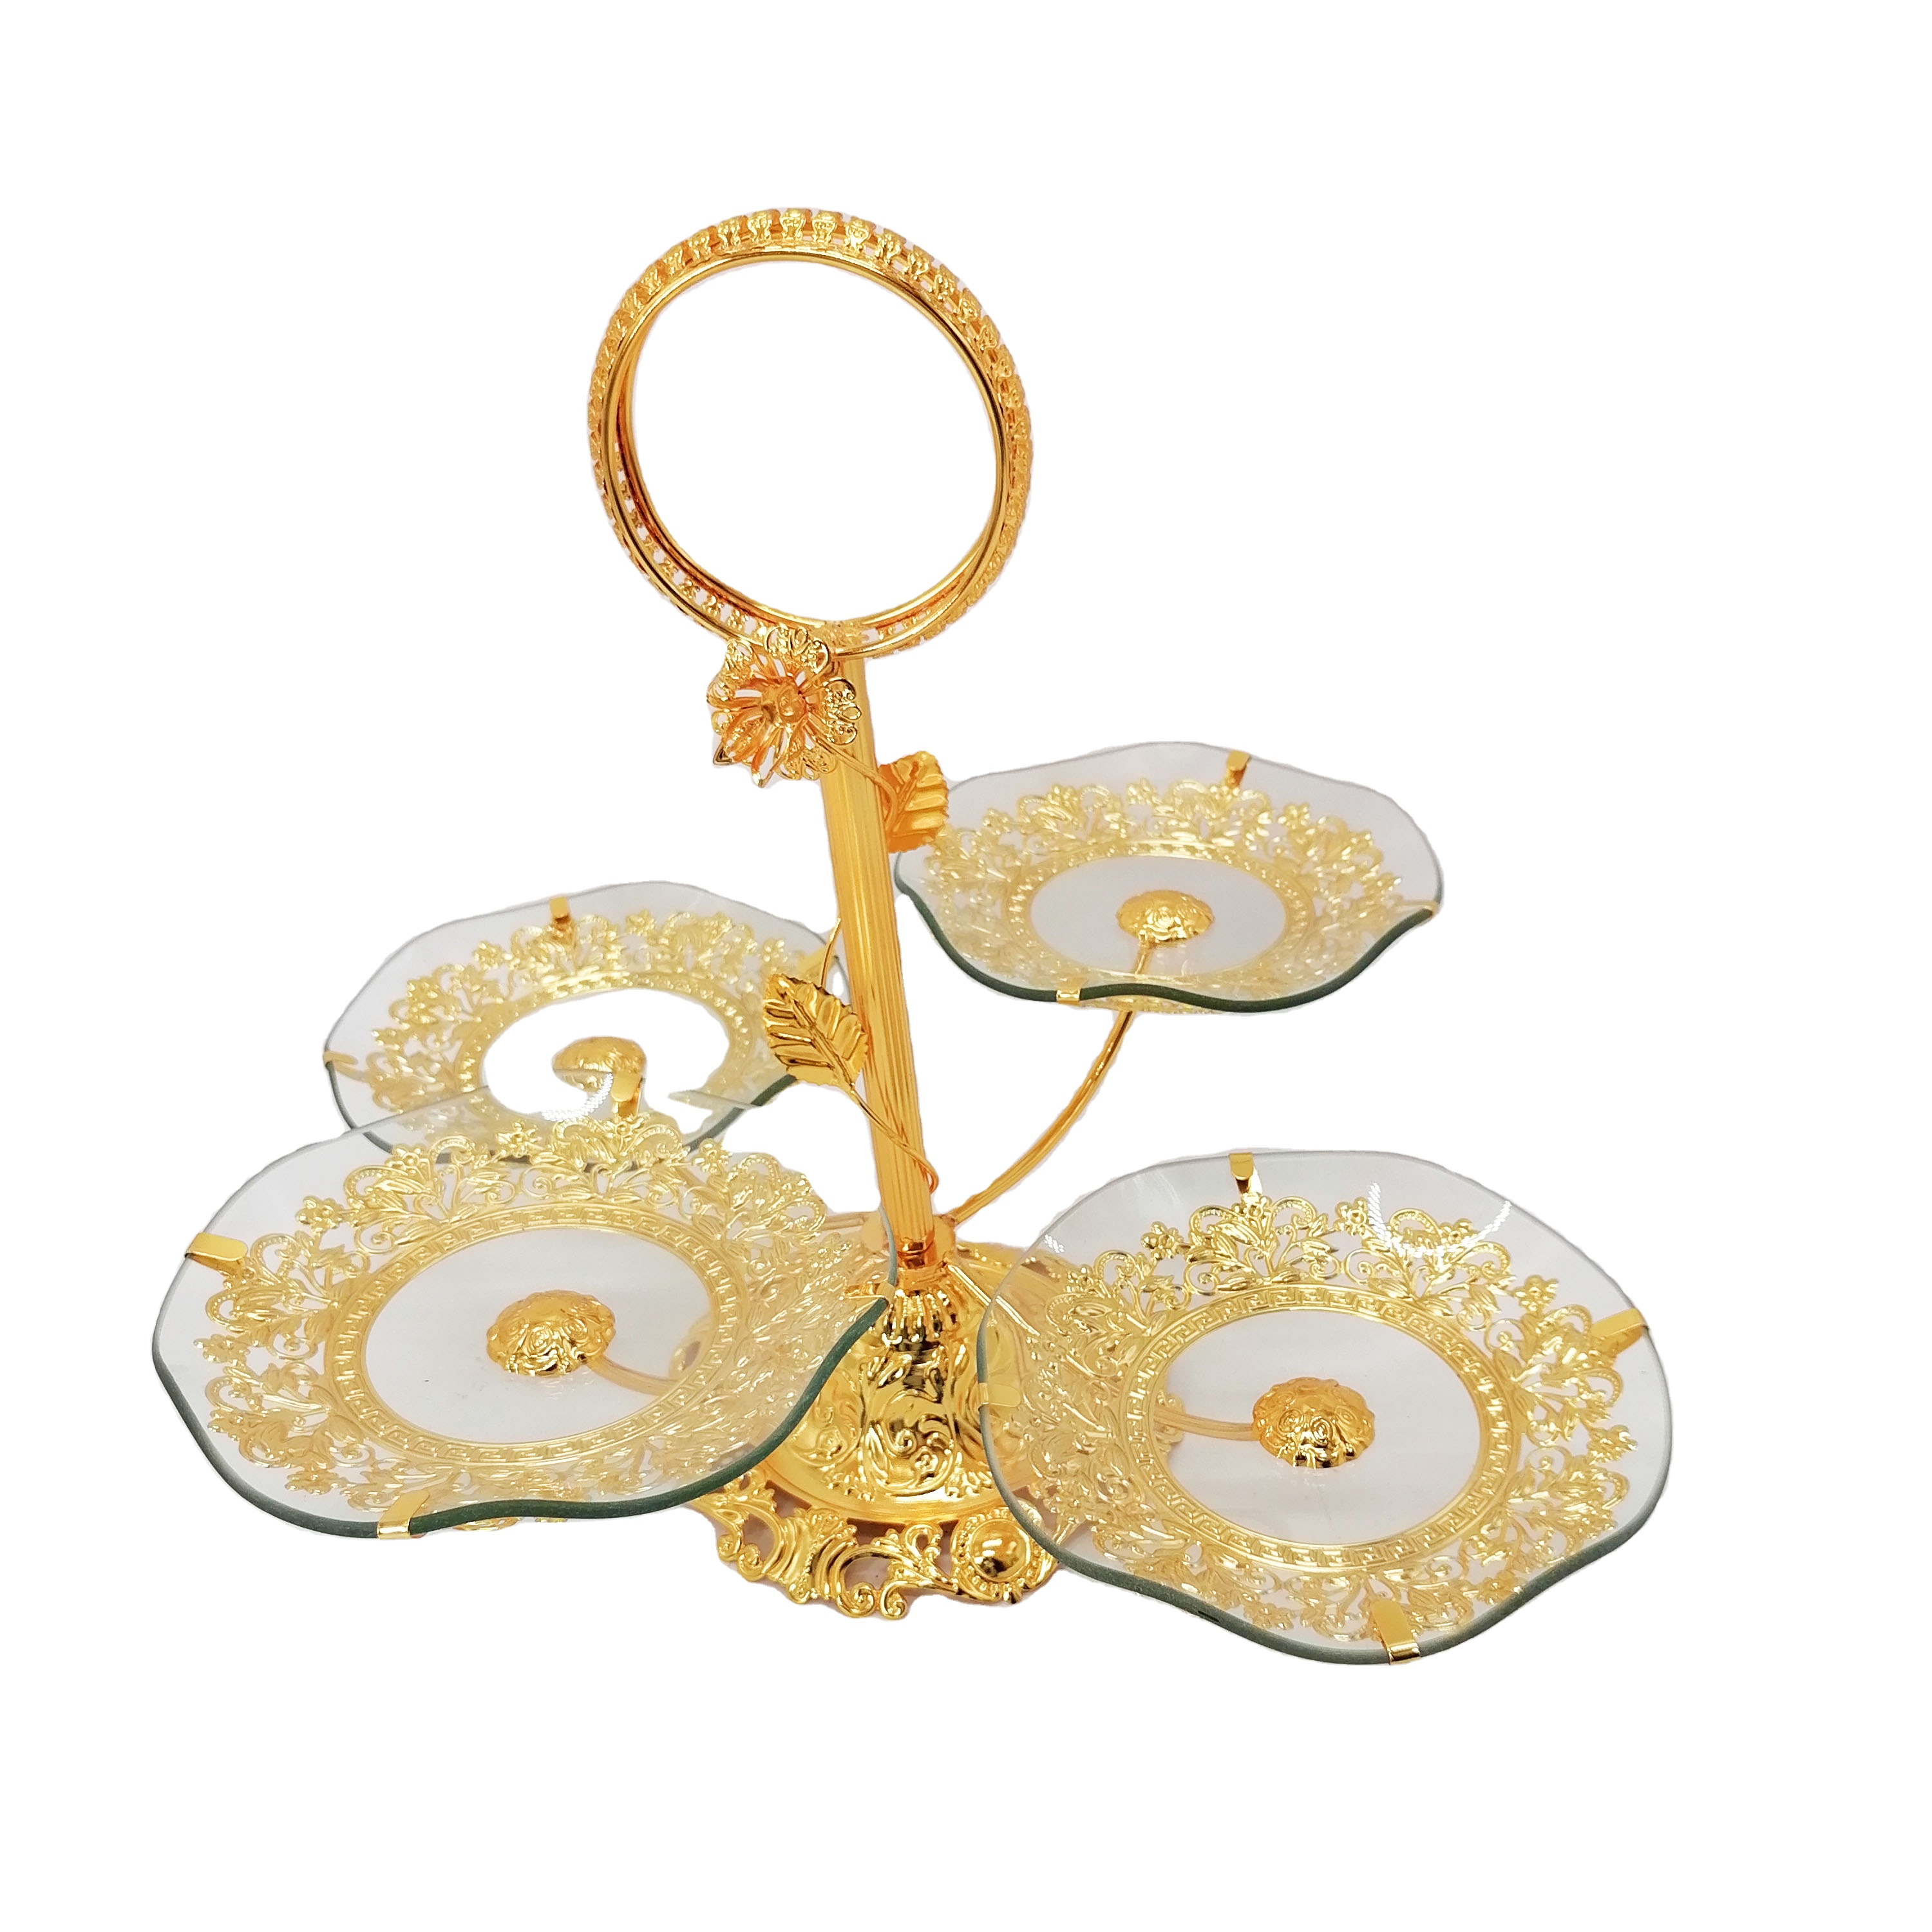 4 tire metal glass gold cake stands for wedding cakes decorative display with dome